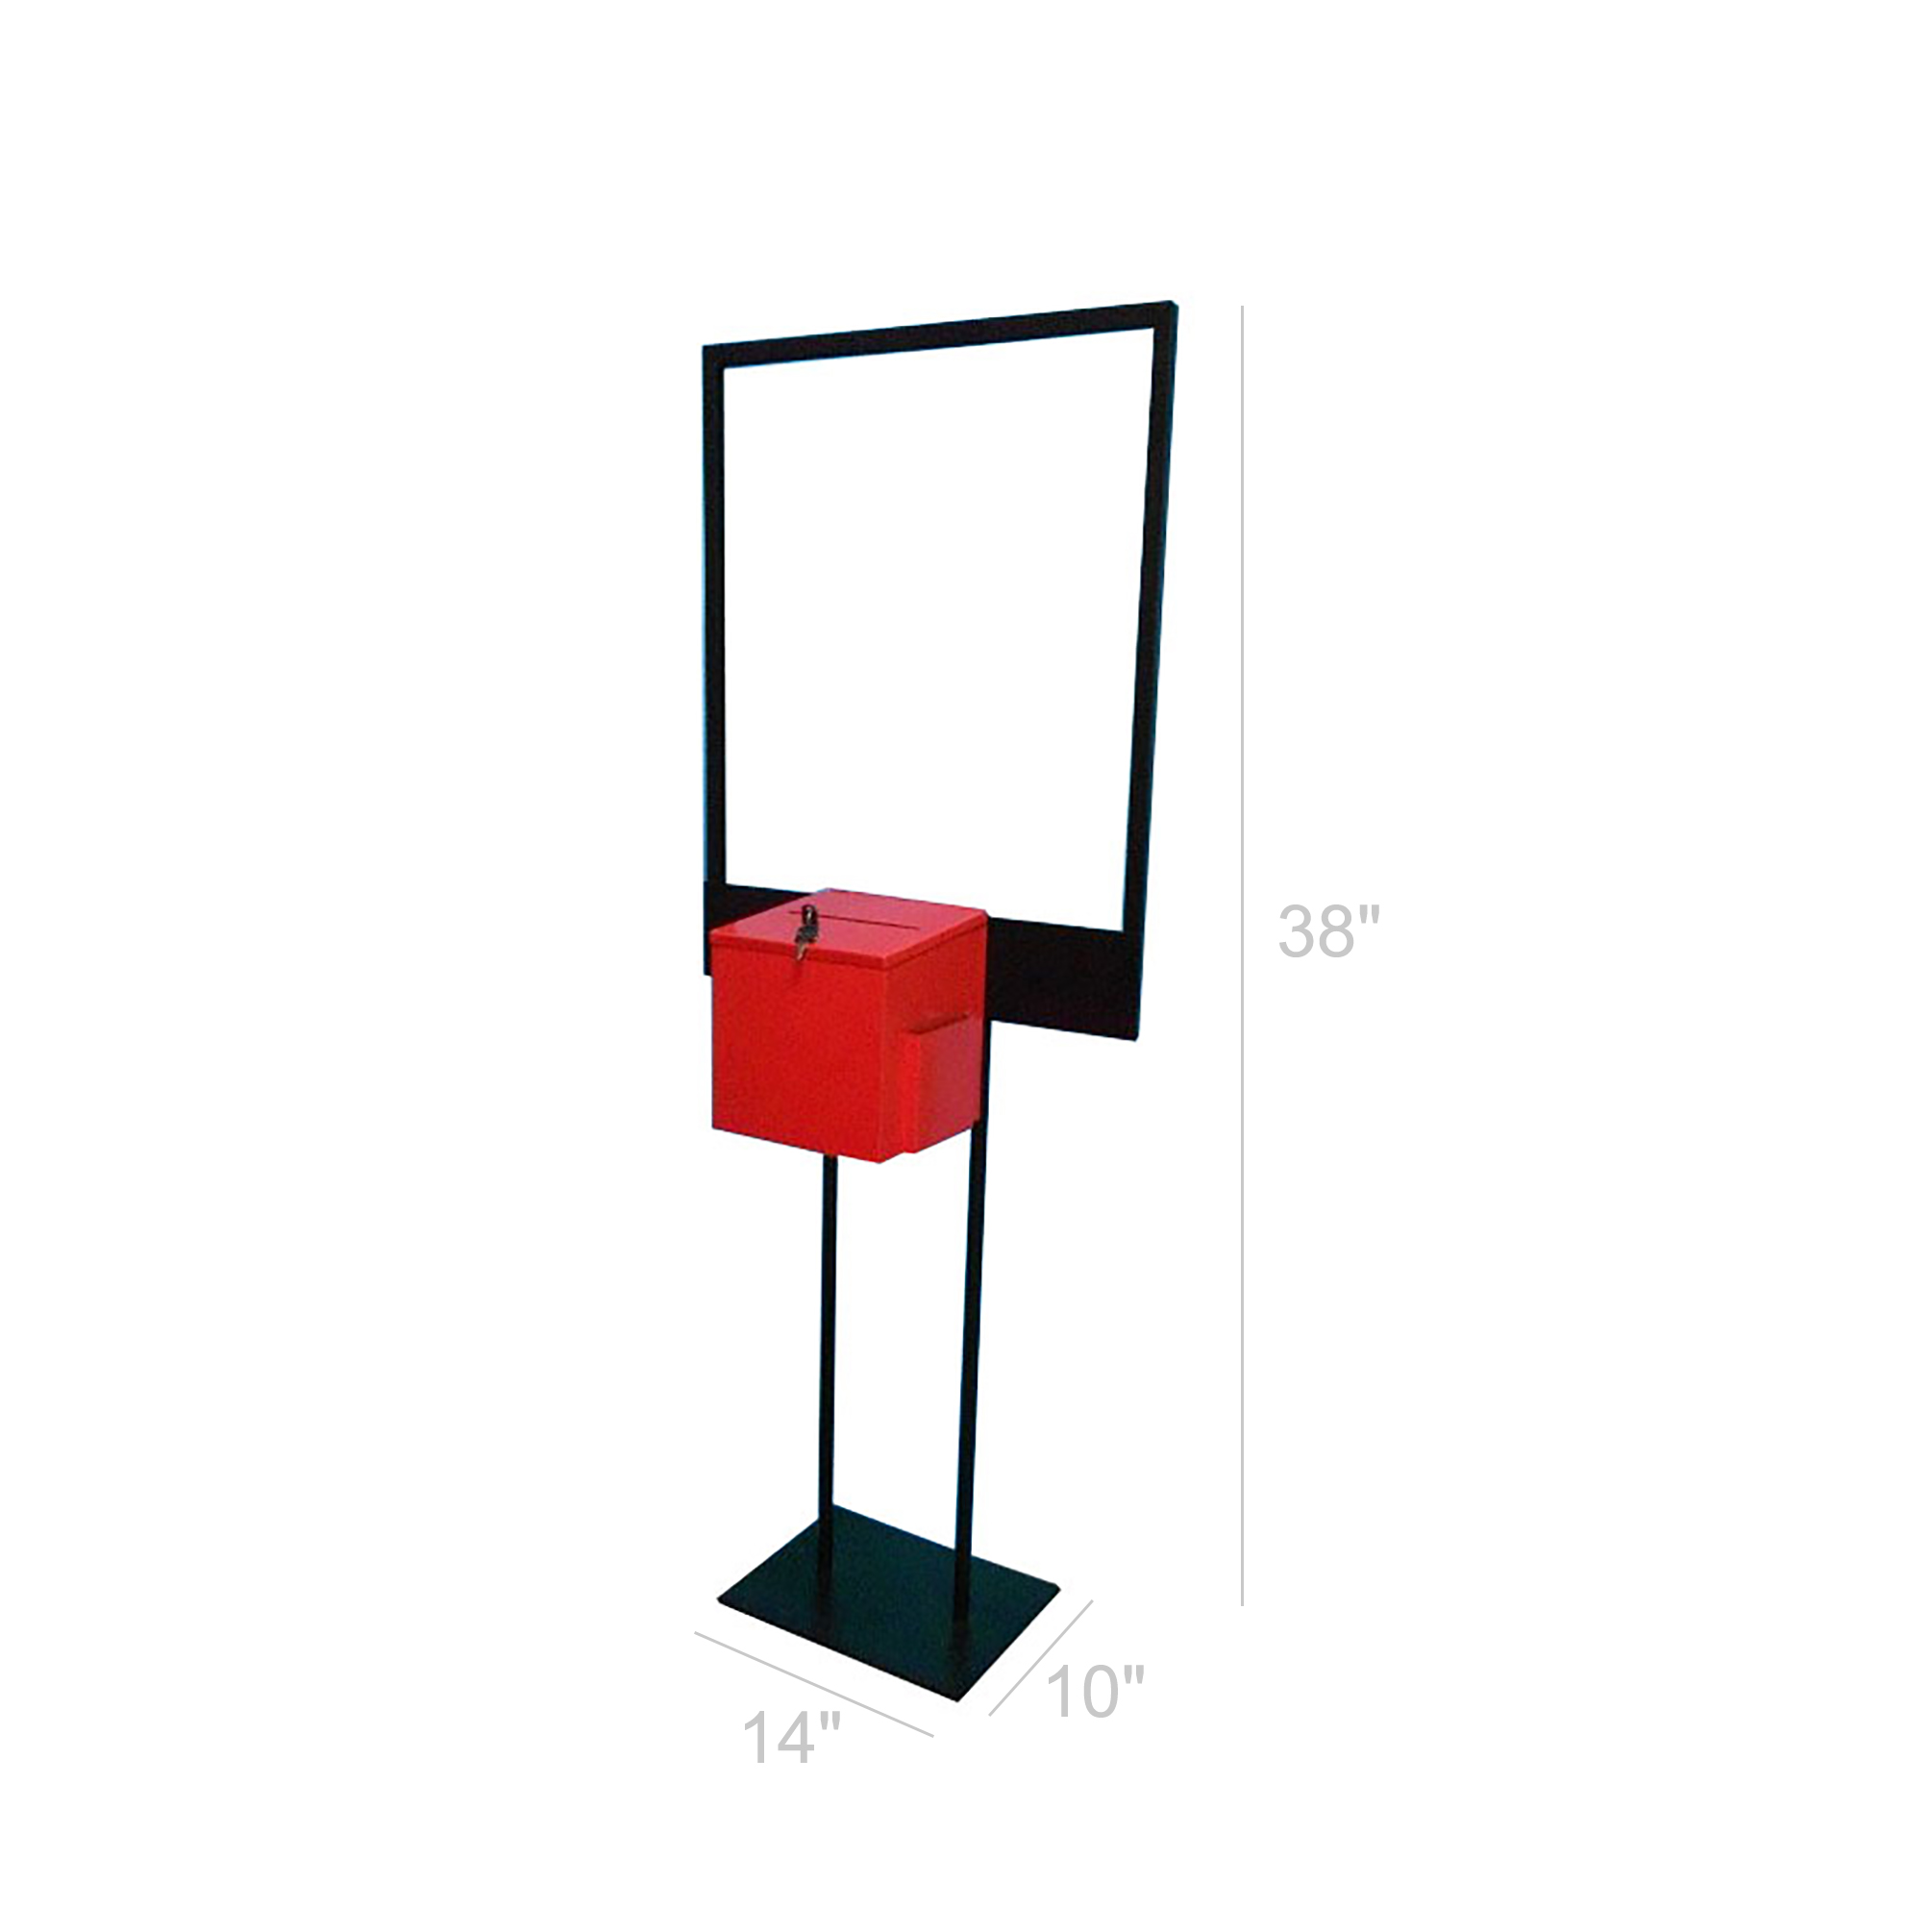 Poster Stand Floor standing Donation Box Stand Fundraising Awarenewss Sign 11063